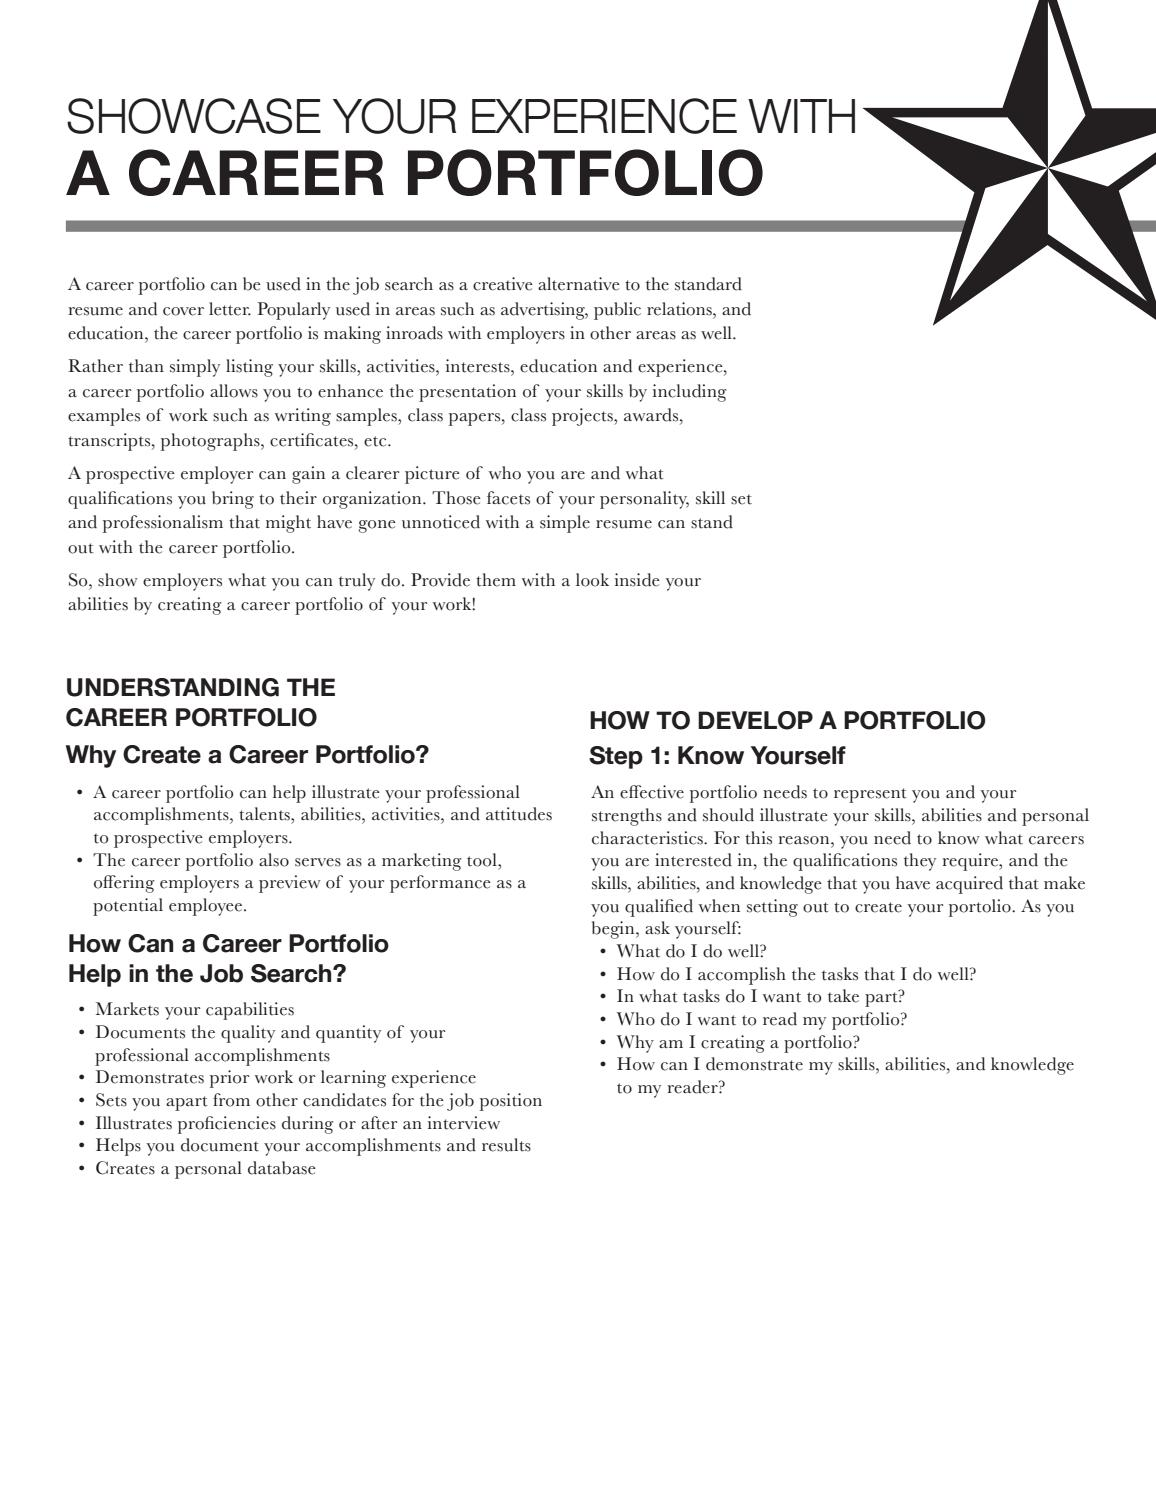 career portfolio by texas state university career services